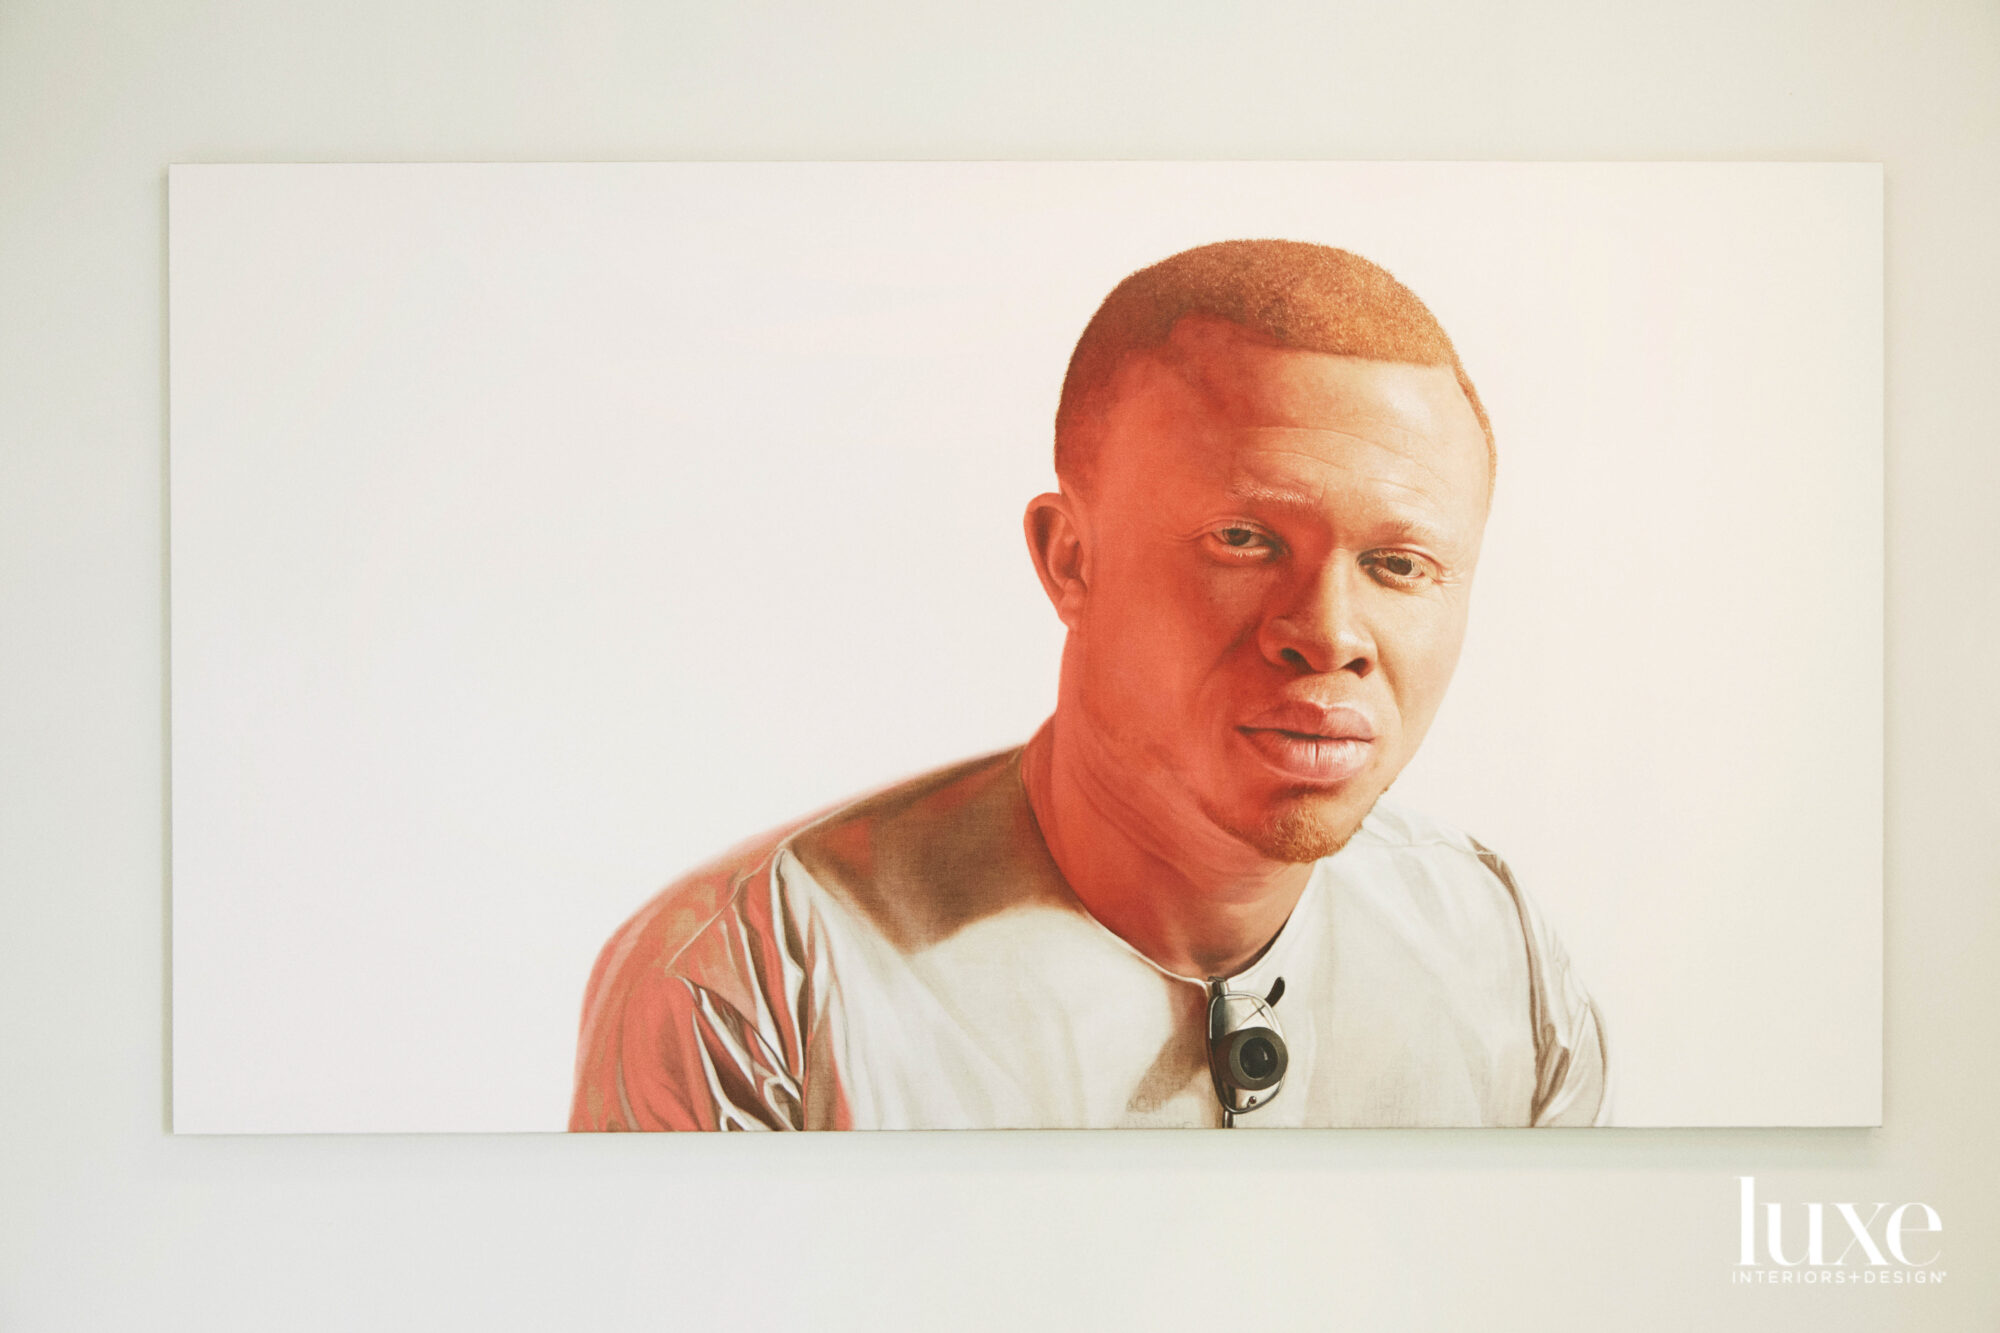 A painting of a Black main in a pale t-shirt.